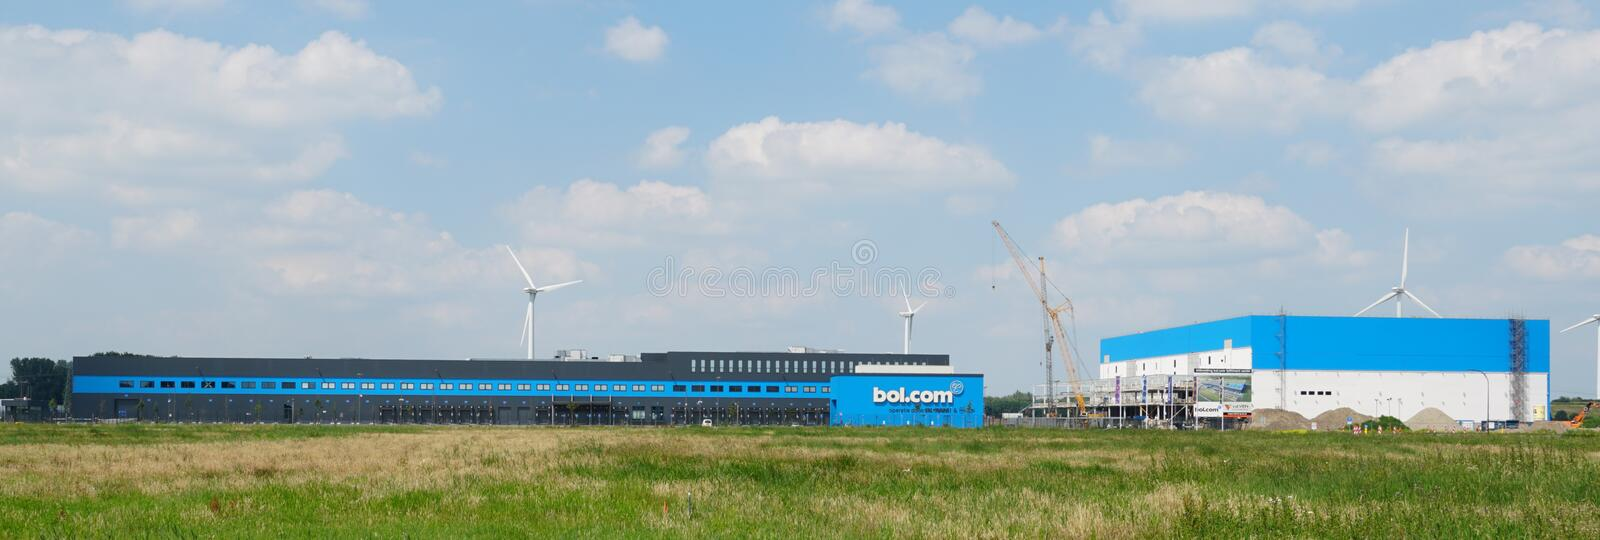 Bol.com distribution center in Waalwijk. Waalwijk, the Netherlands. June 2019. Distribution center for Bol.com in Waalwijk, a leading internet shop in the stock images